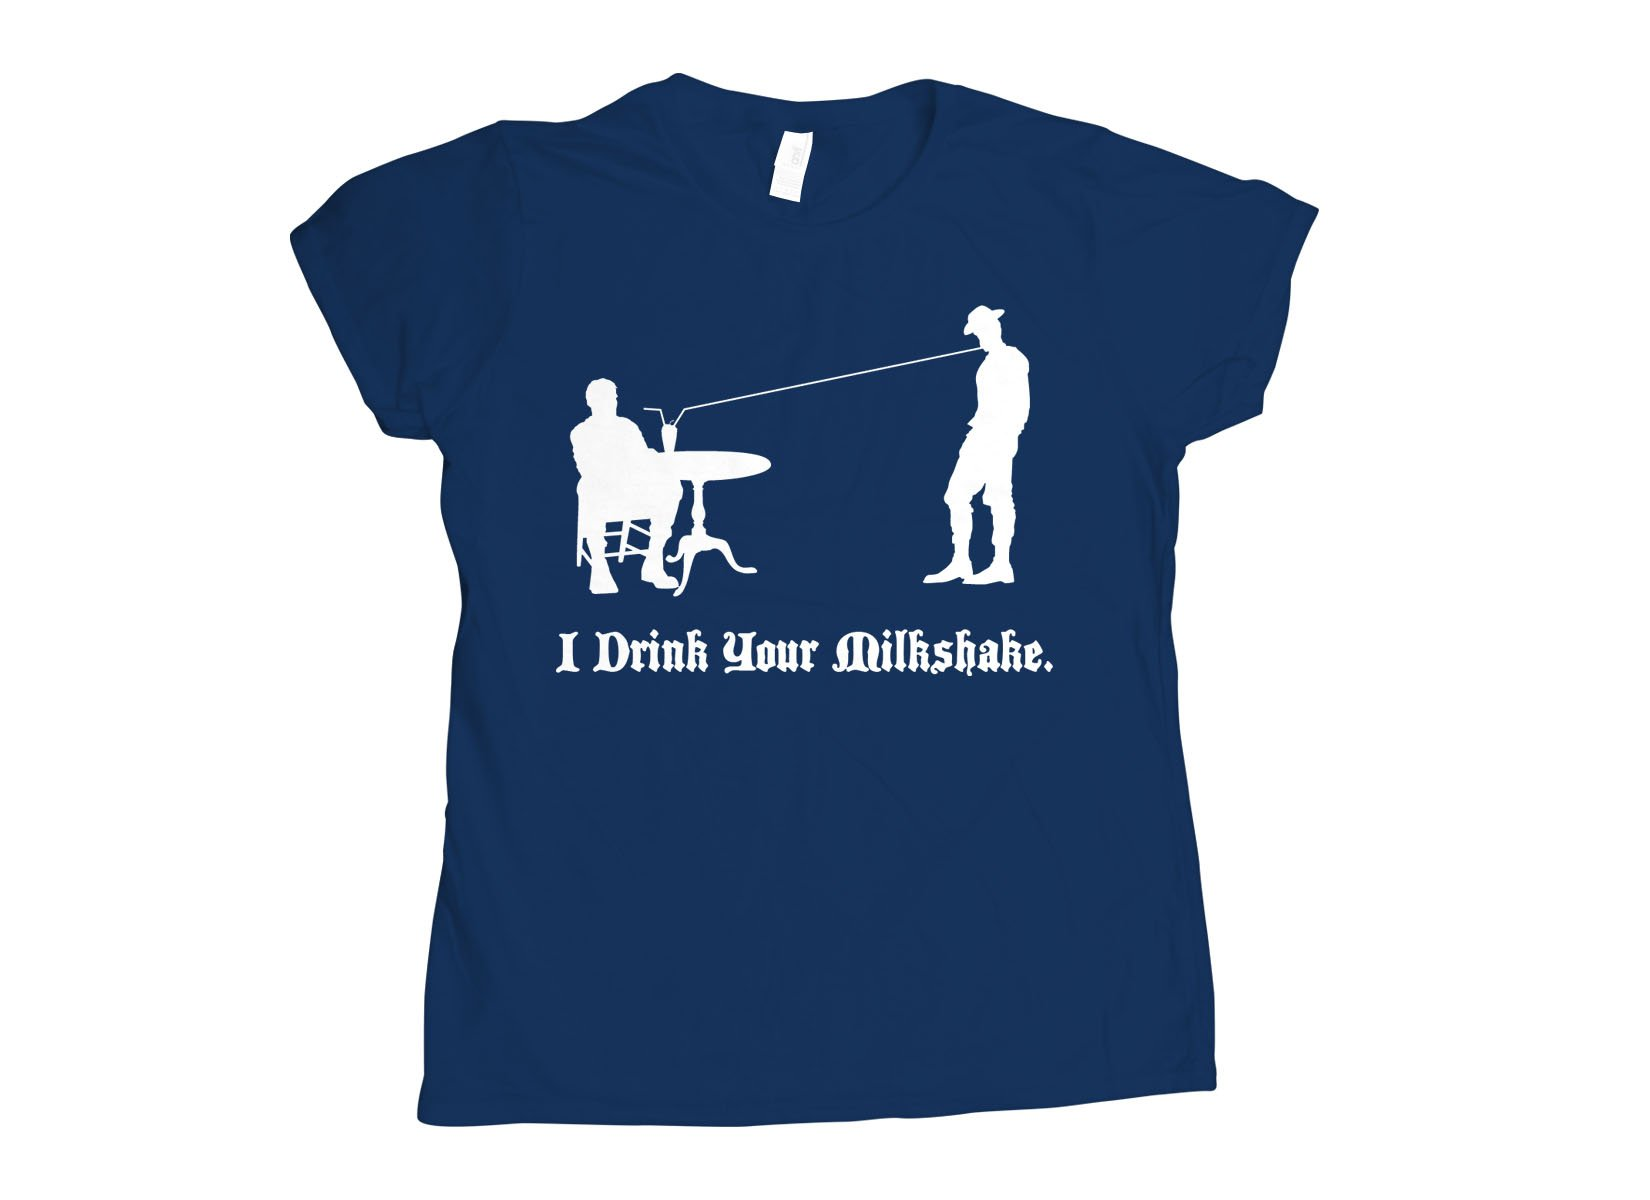 I Drink Your Milkshake on Womens T-Shirt